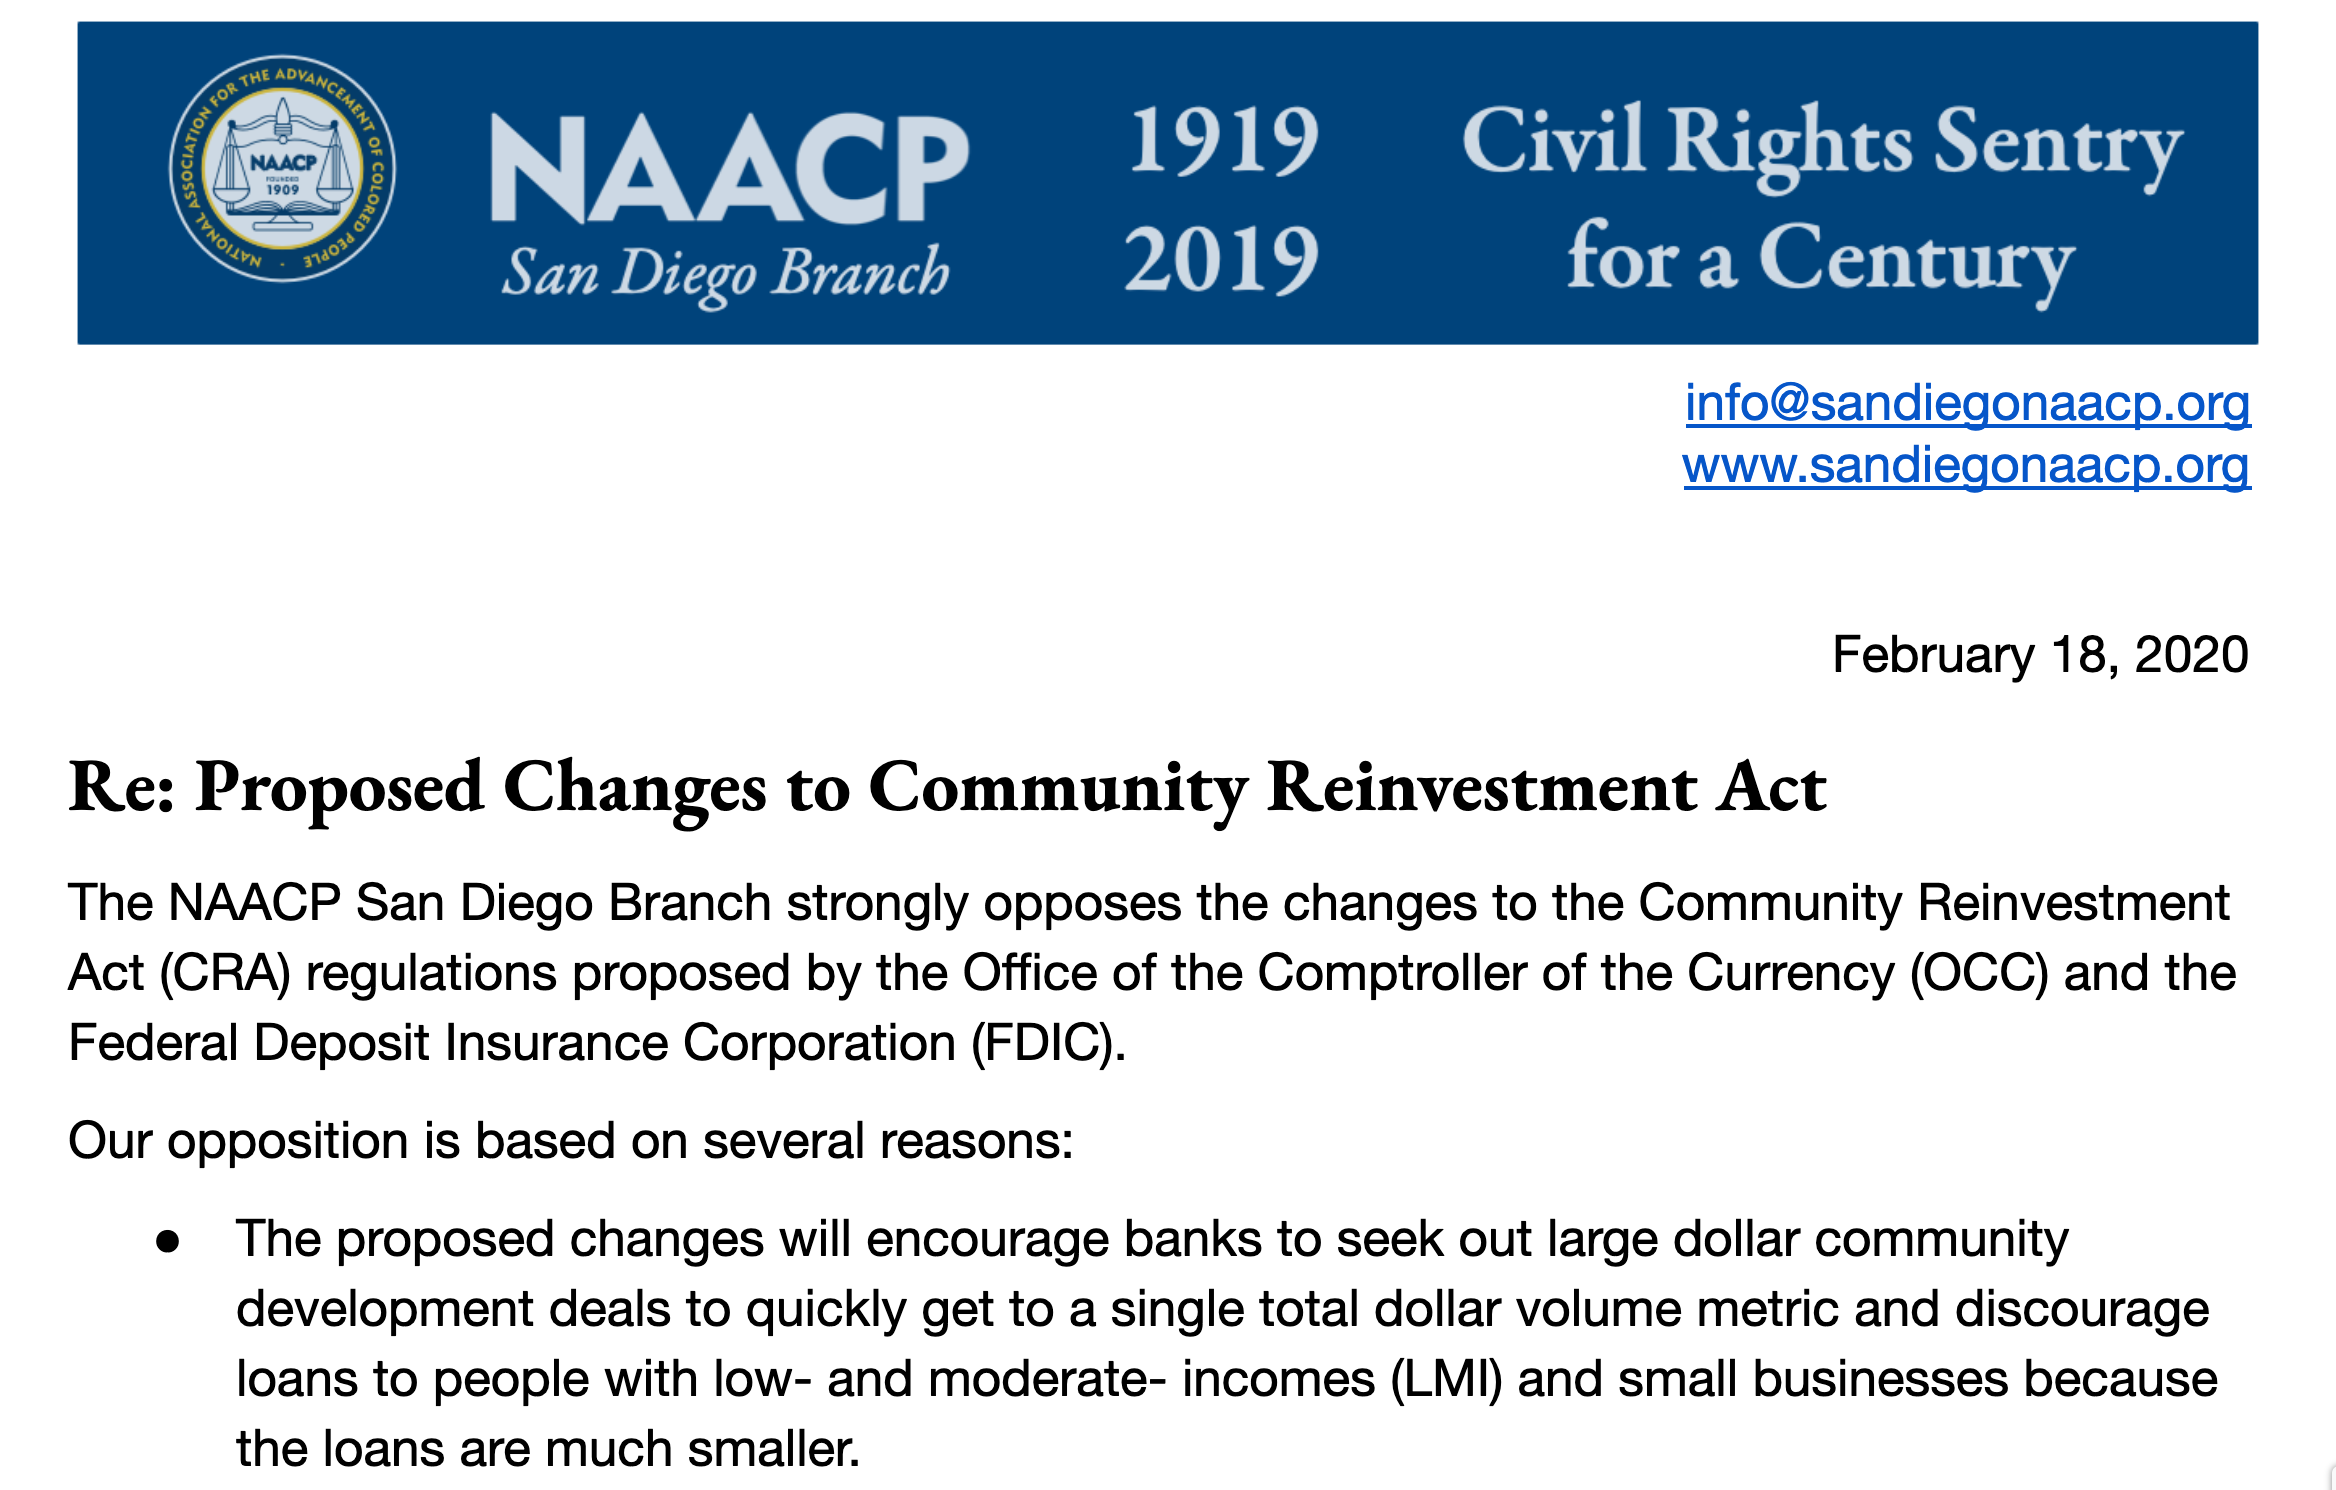 Community Reinvestment Act: Harmful Changes Proposed